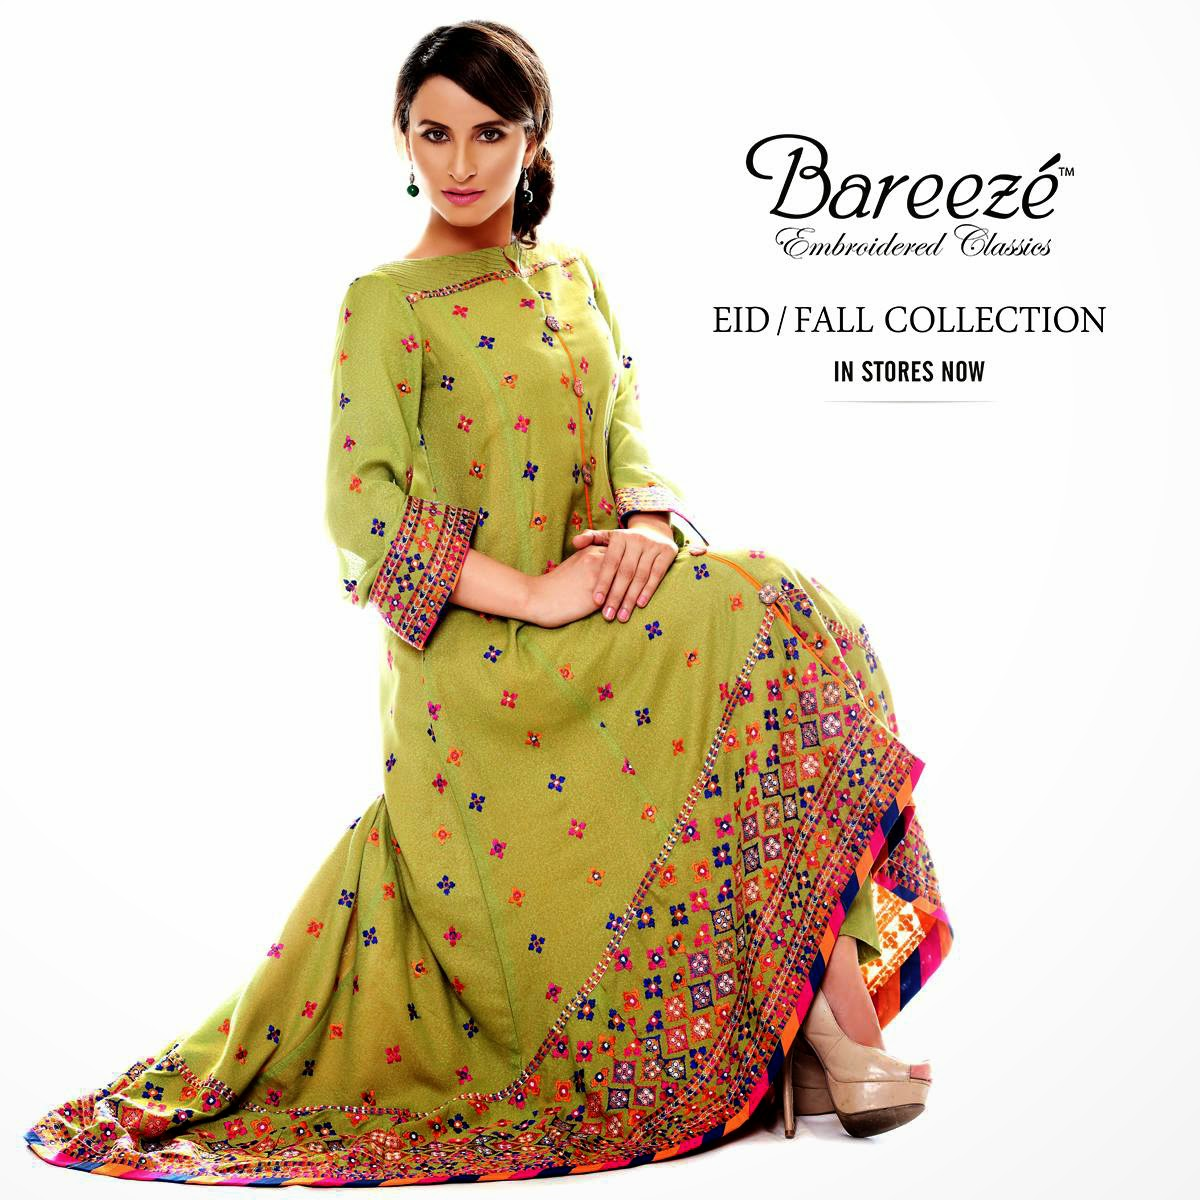 This Bareeze collection will be a complete and distinguished choice of you  for these Bareeze Eid dresses and coming fall winter season 2013. 584371c9e1d79